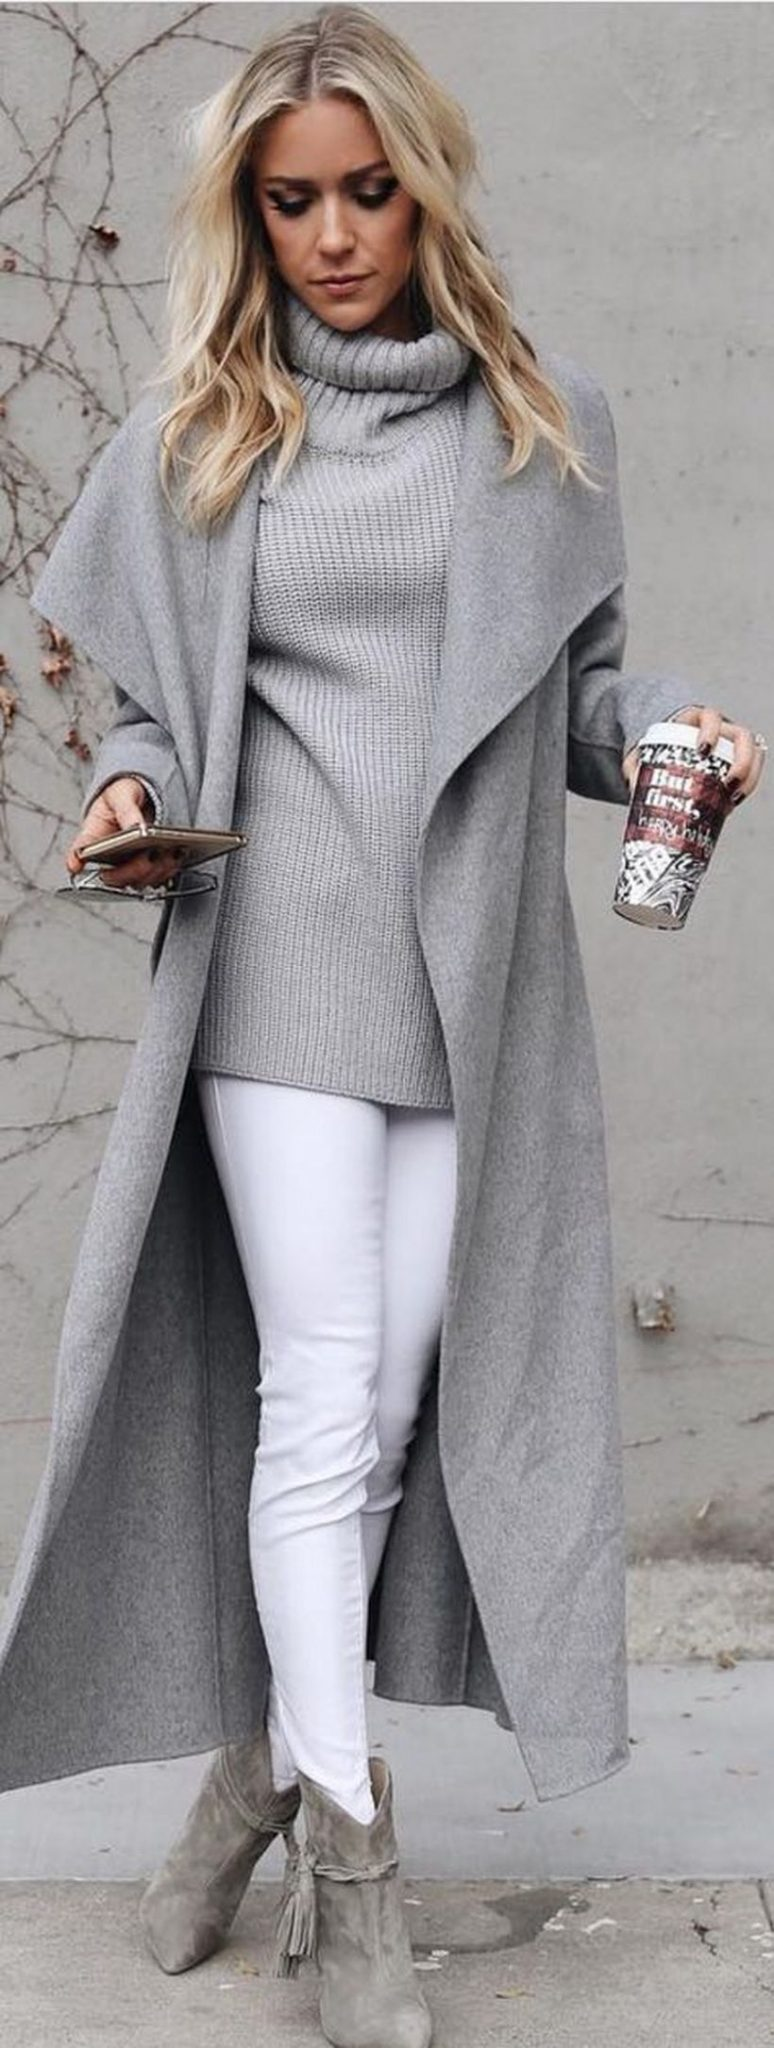 Fashionable outfit style for winter 2017 43